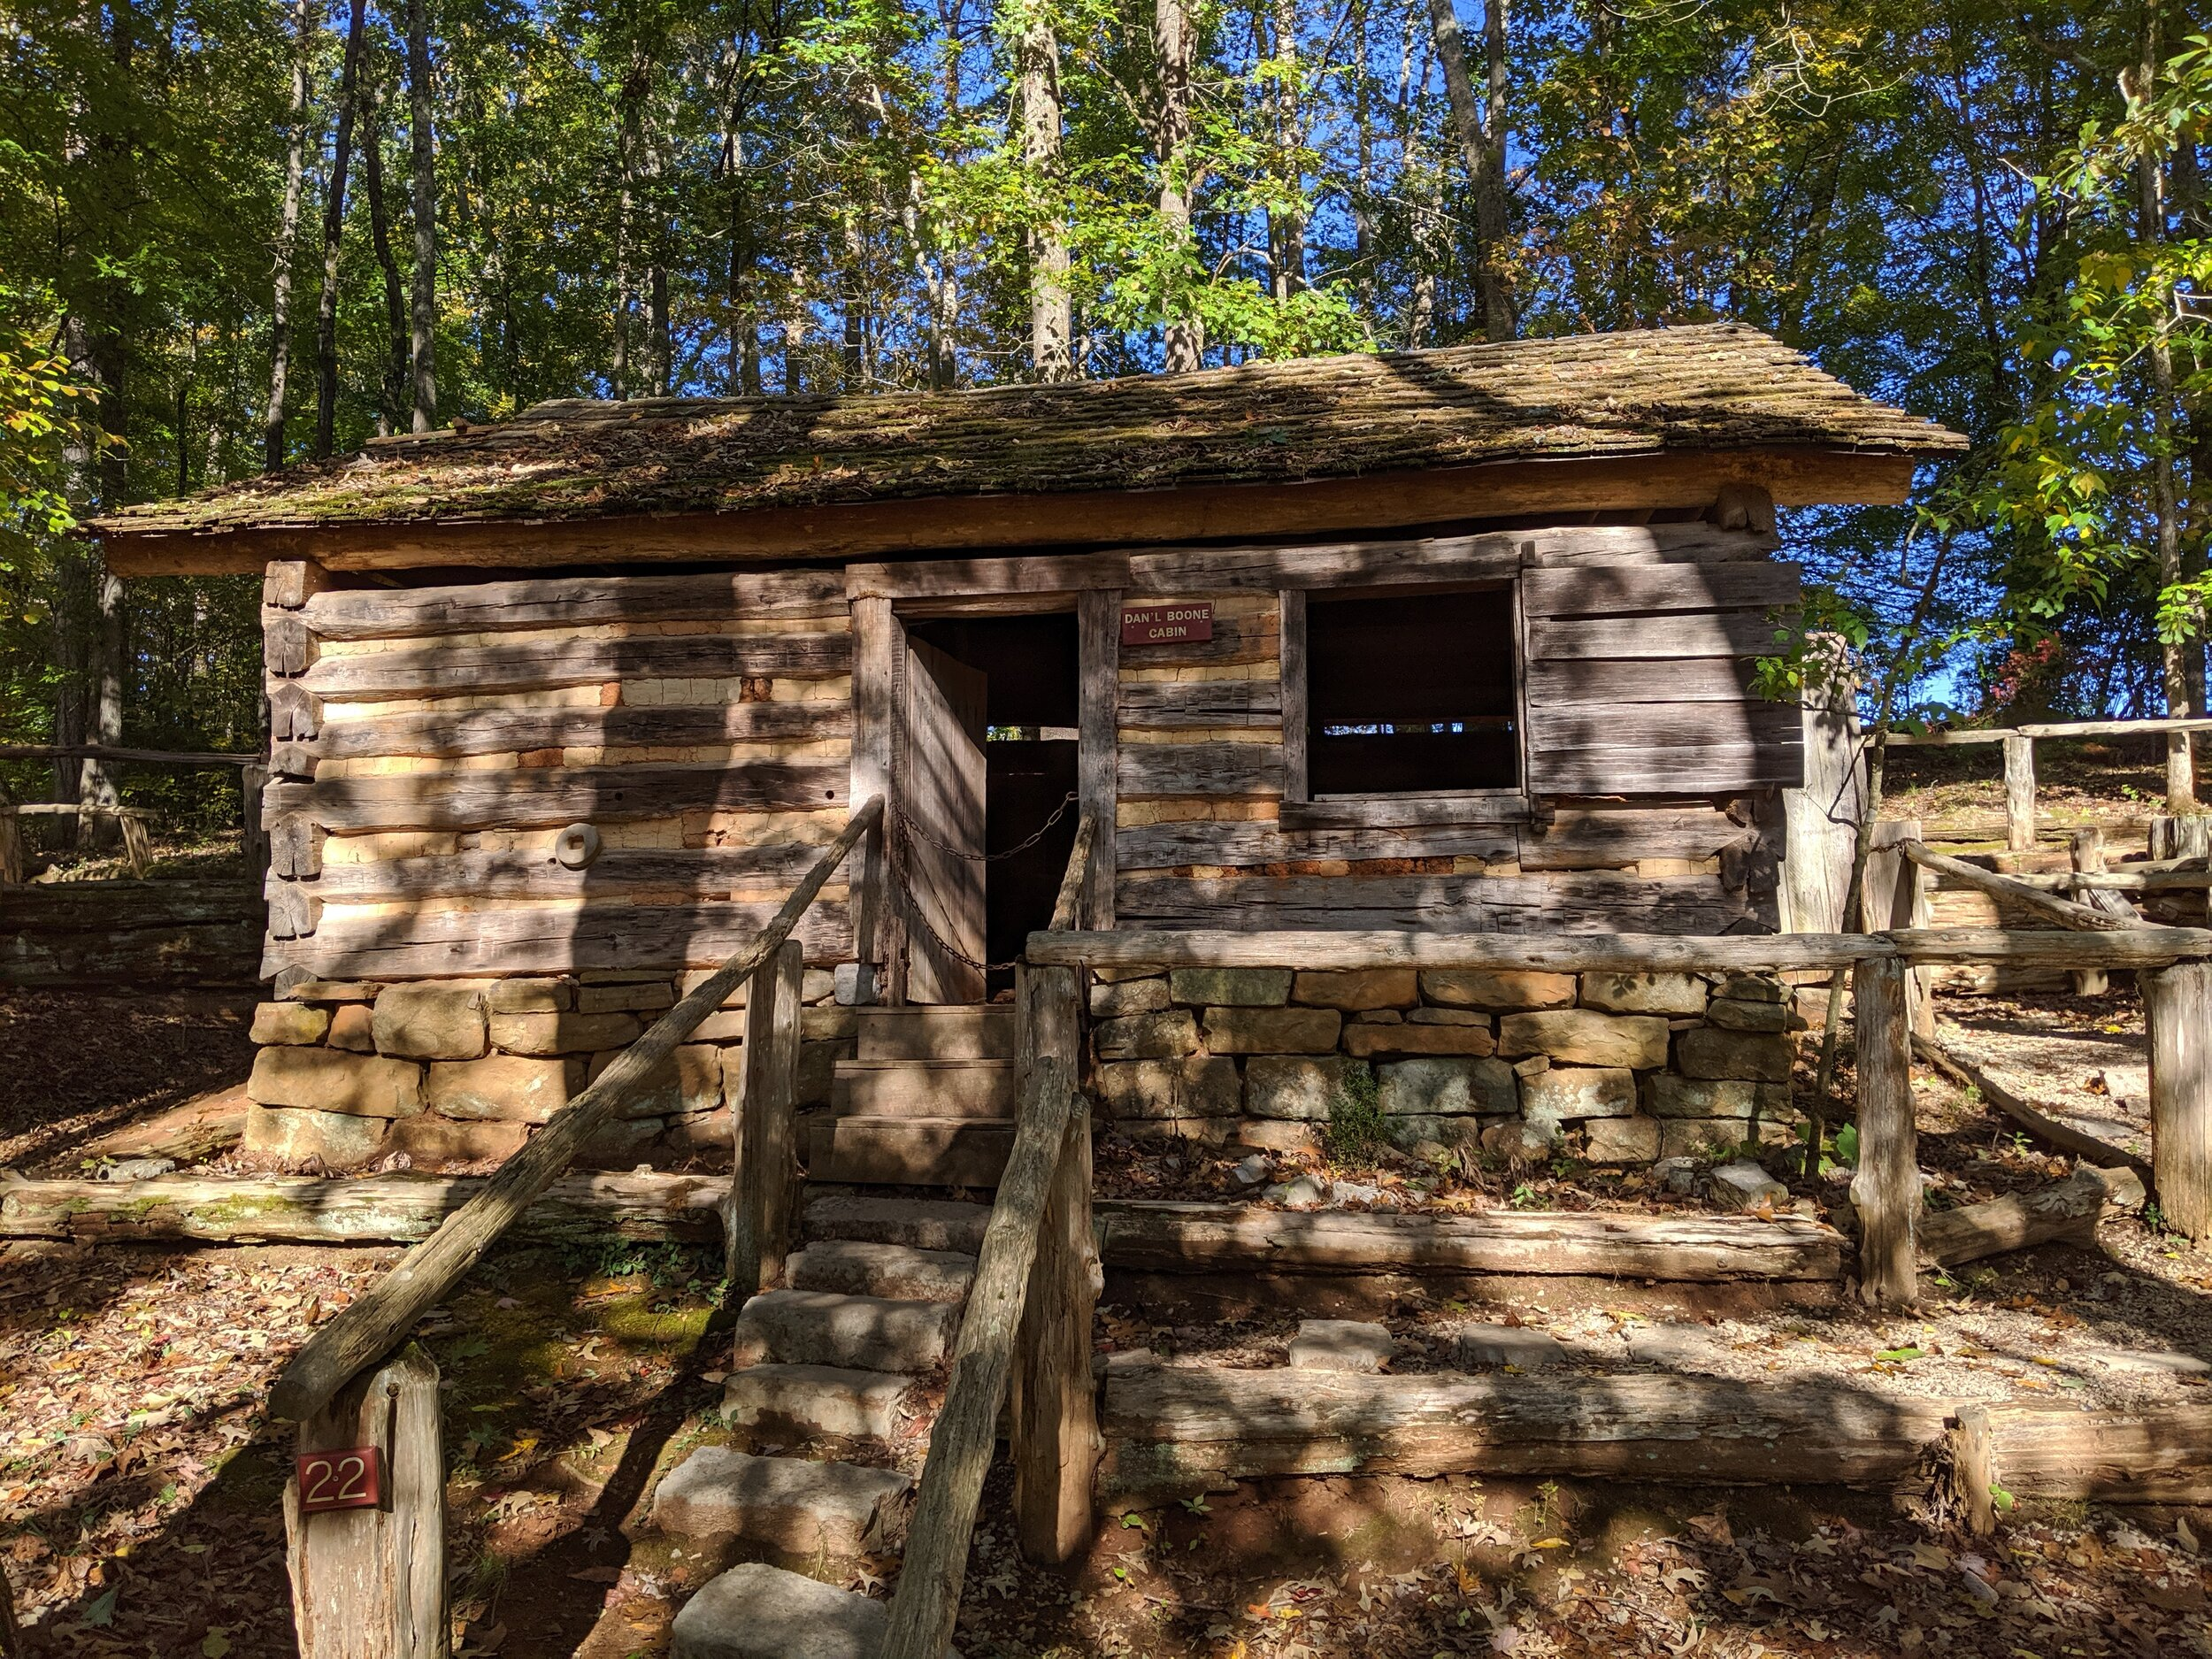 This is the cabin used in the old Daniel Boone TV series (Daniel Boone was a maaan…yes, a biiiig maaan…)